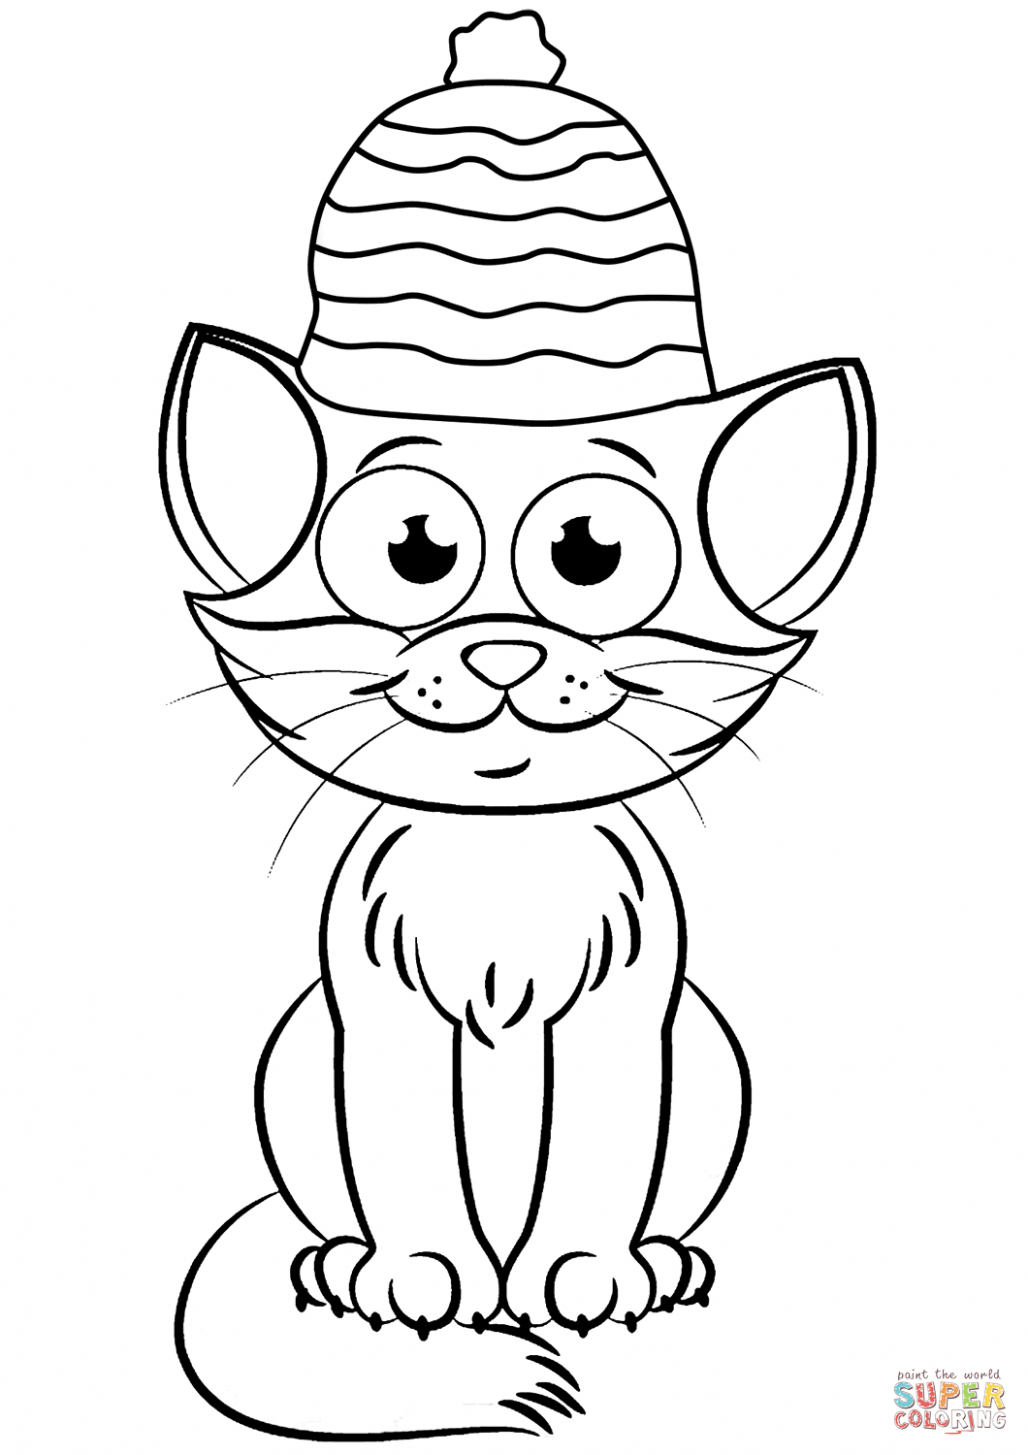 Christmas Cat coloring page | Free Printable Coloring Pages - Printable Christmas Cat Coloring Pages